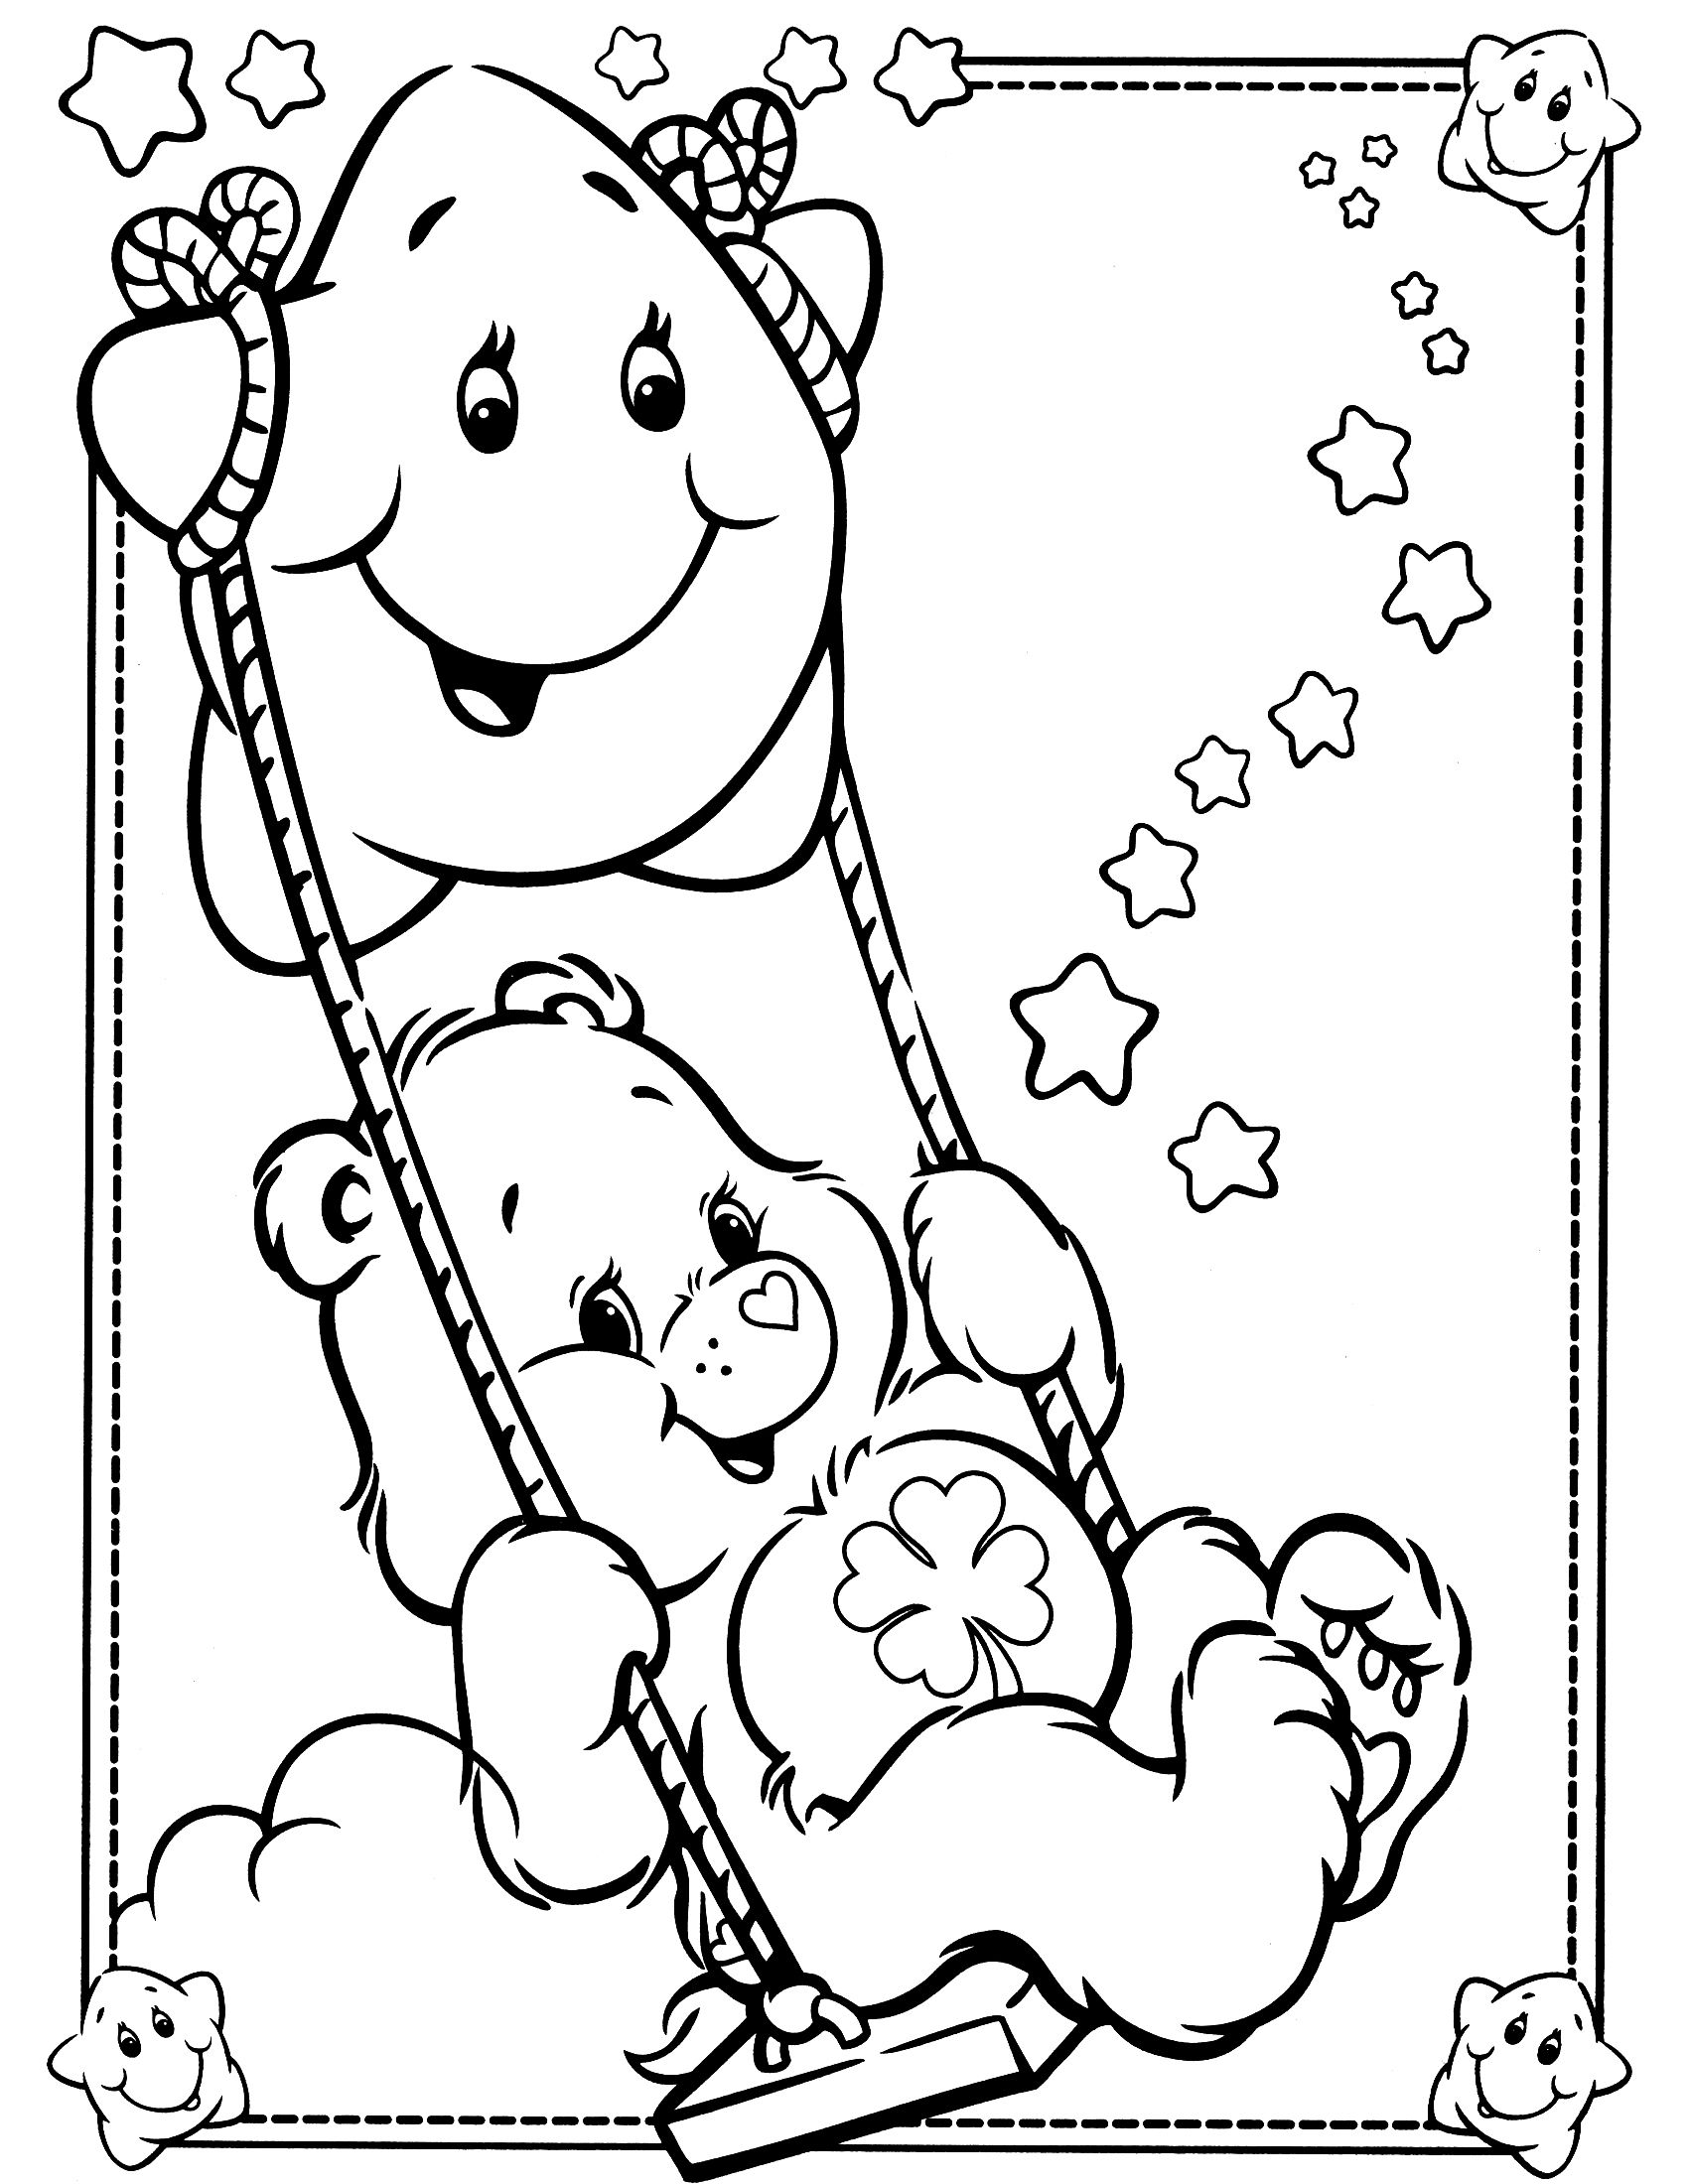 care bears cousins coloring pages - photo#32